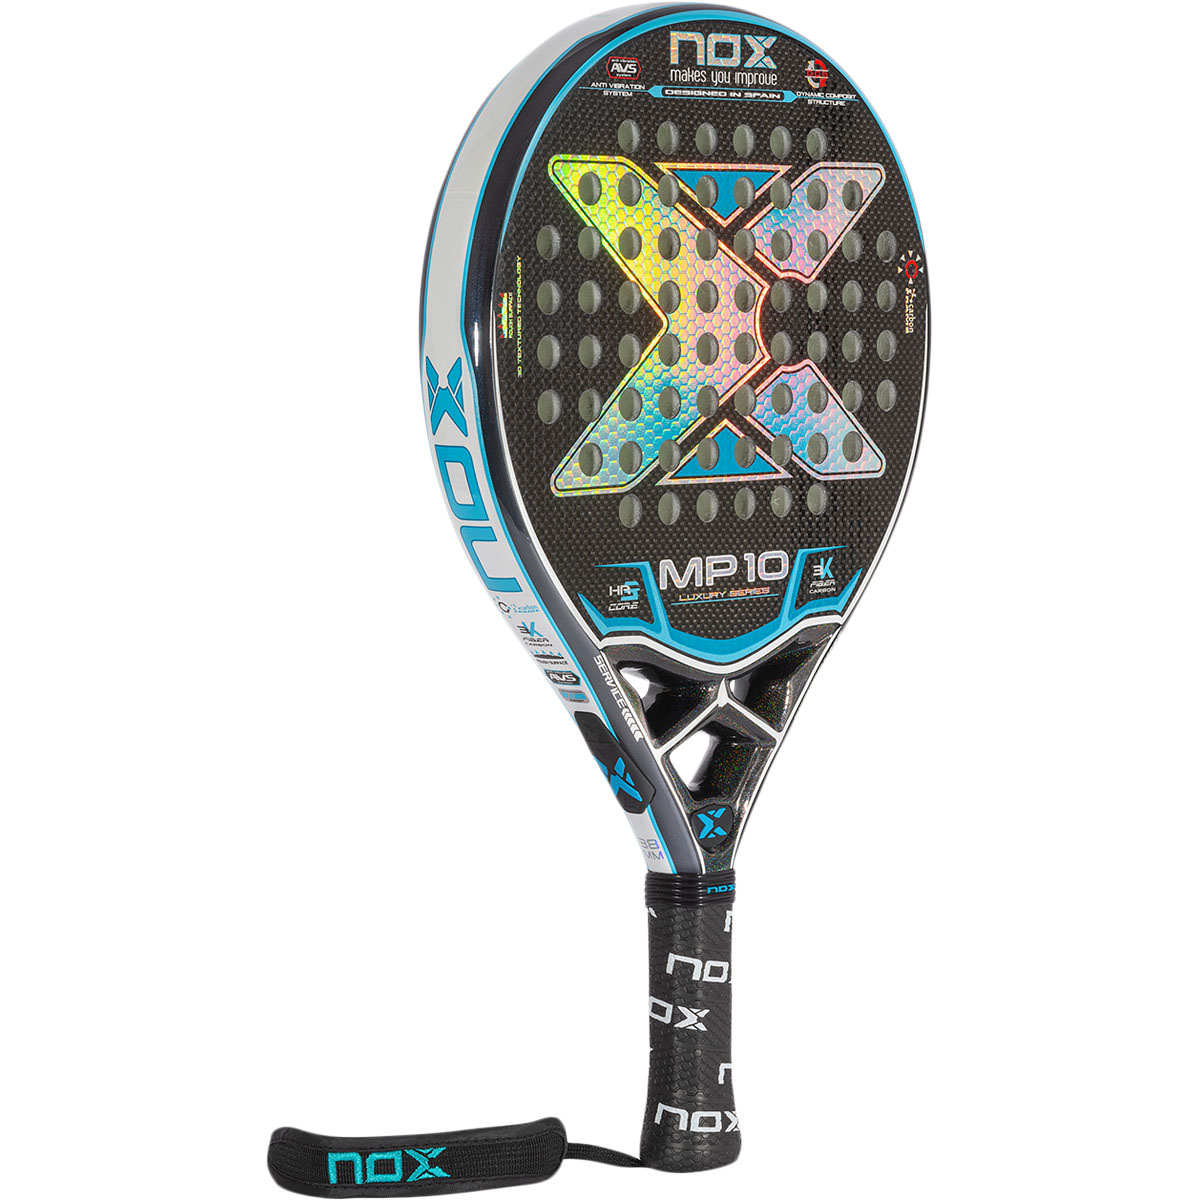 NOX MP10 Luxury Gemelas Atómikas Padel Bat